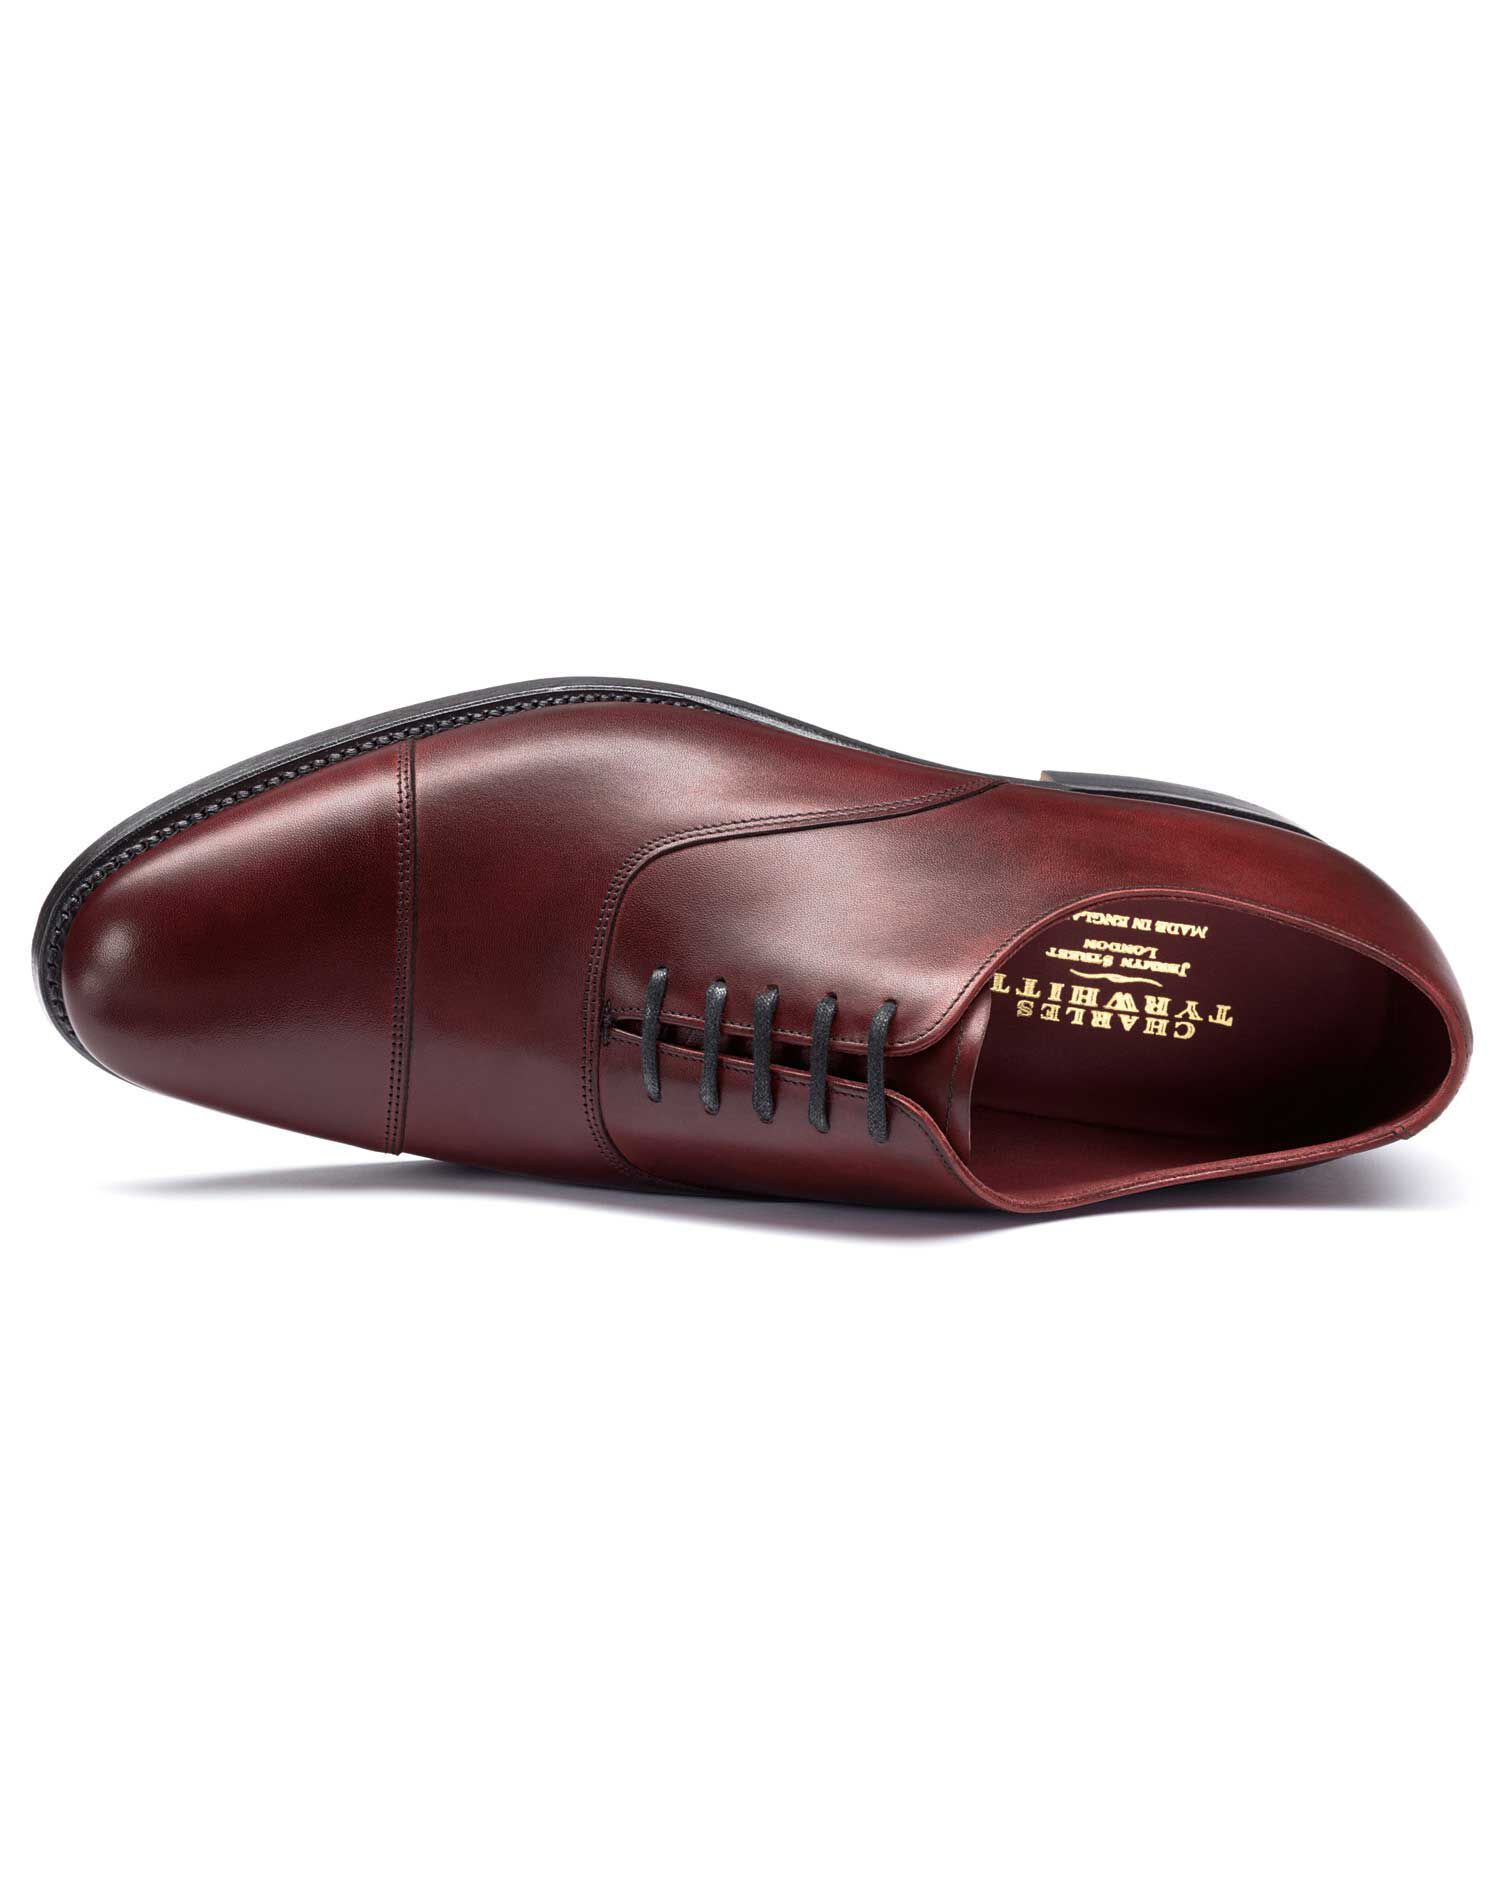 Burgundy Heathcote Calf Leather Toe Cap Oxford Shoes Size 9 by Charles Tyrwhitt